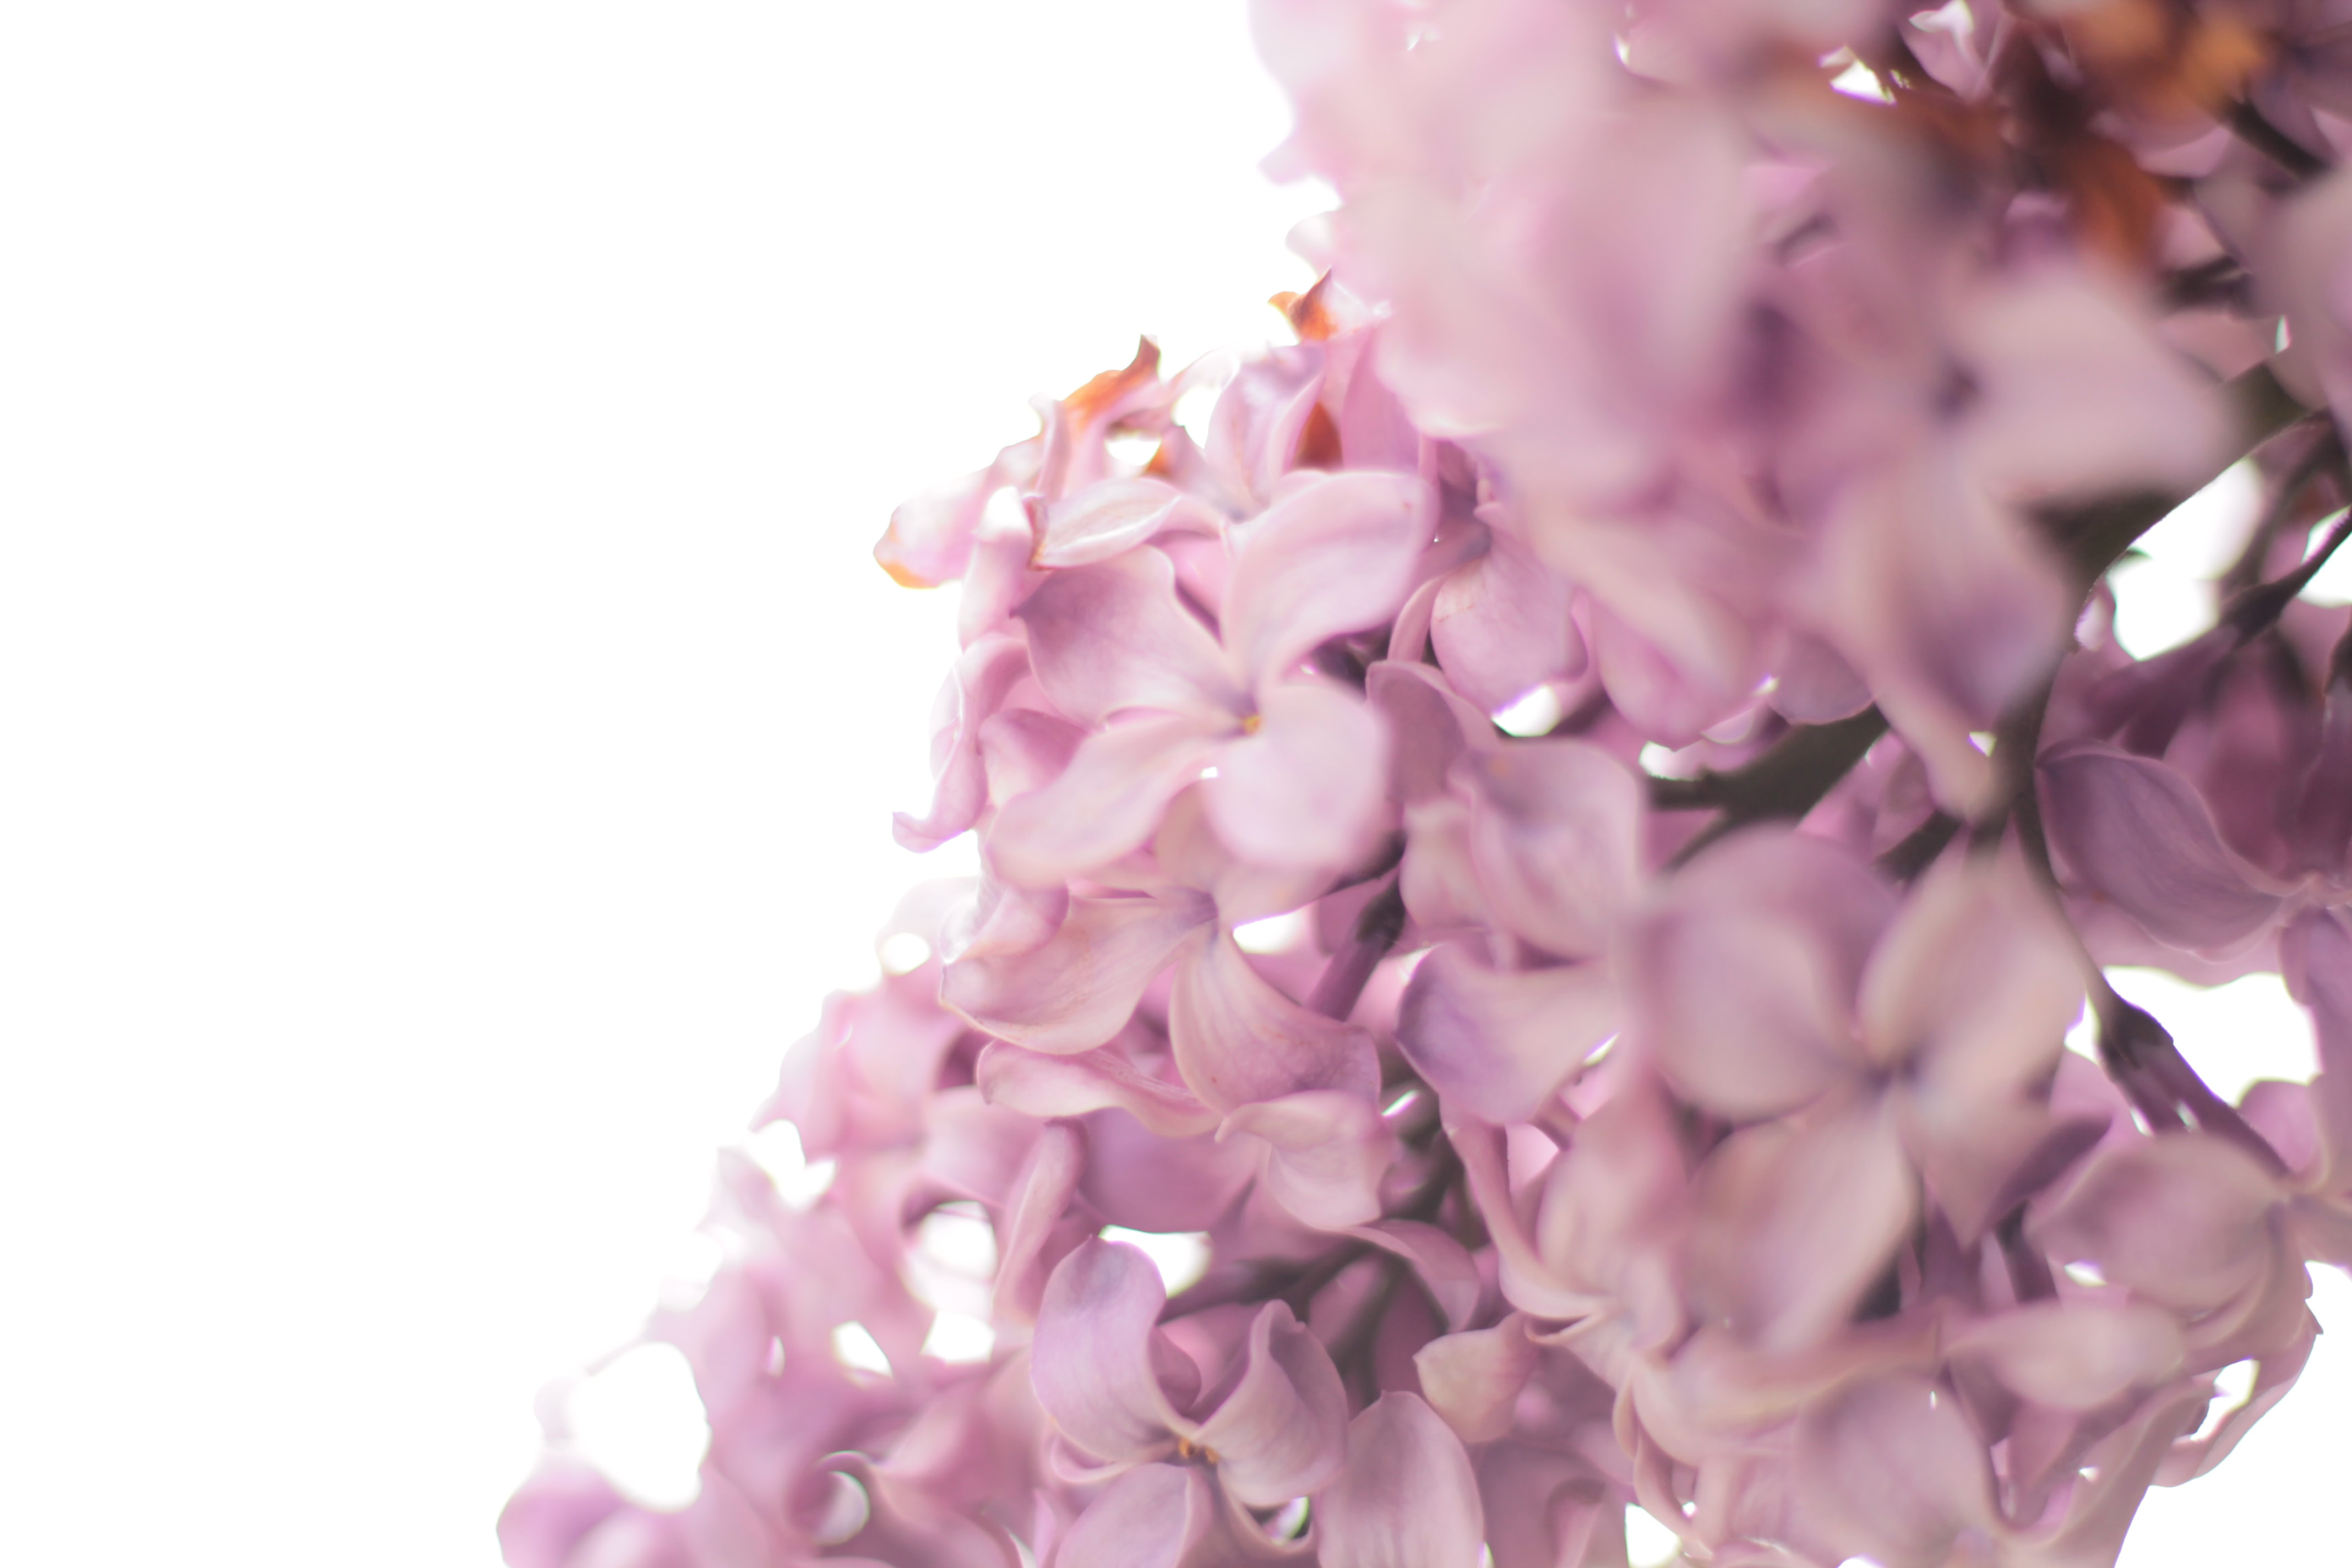 lilacs on monday, a poem break up stories